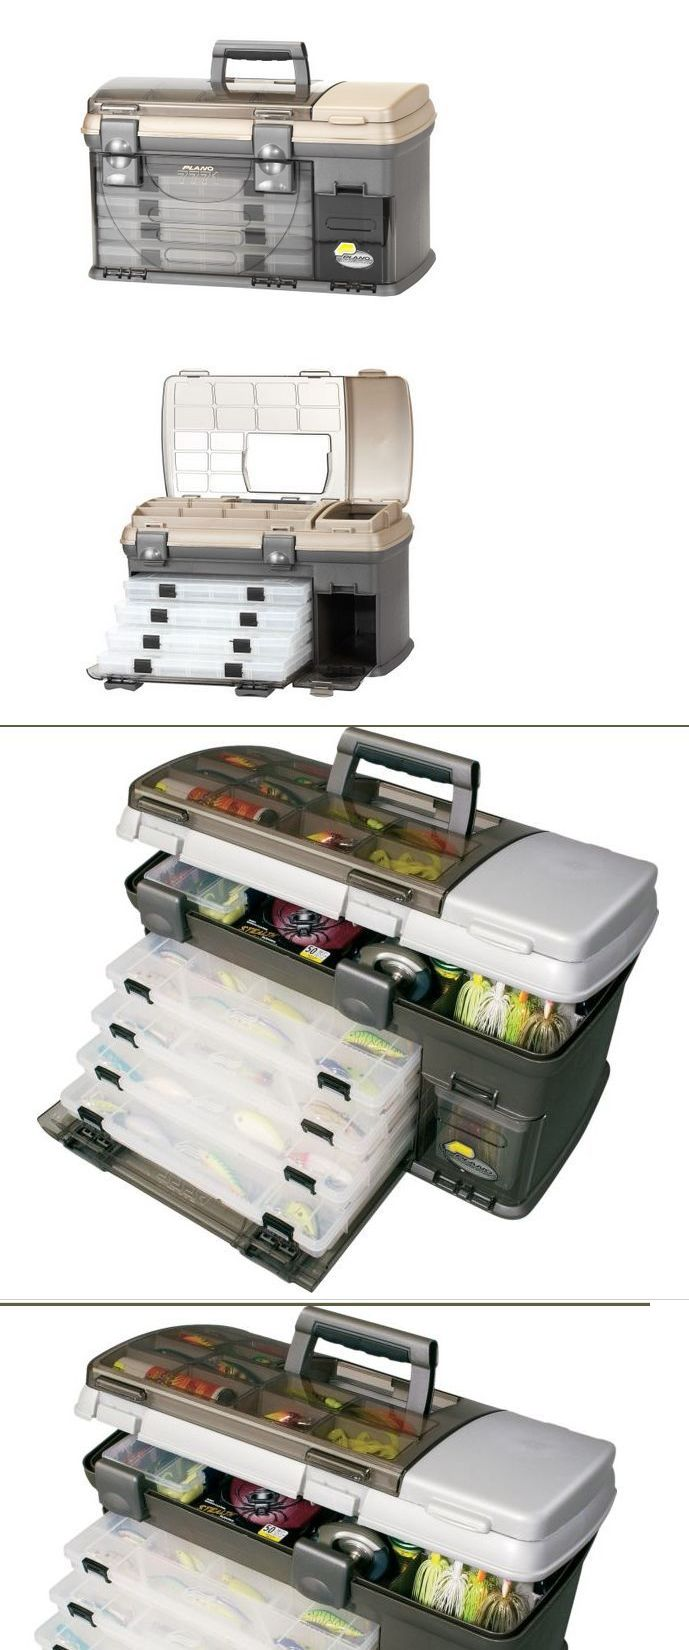 Tackle Boxes and Bags 22696: Large Hard-Sided Fishing Tackle Box W Storage Trays Dividers Tool Organizer New -> BUY IT NOW ONLY: $70.28 on eBay!